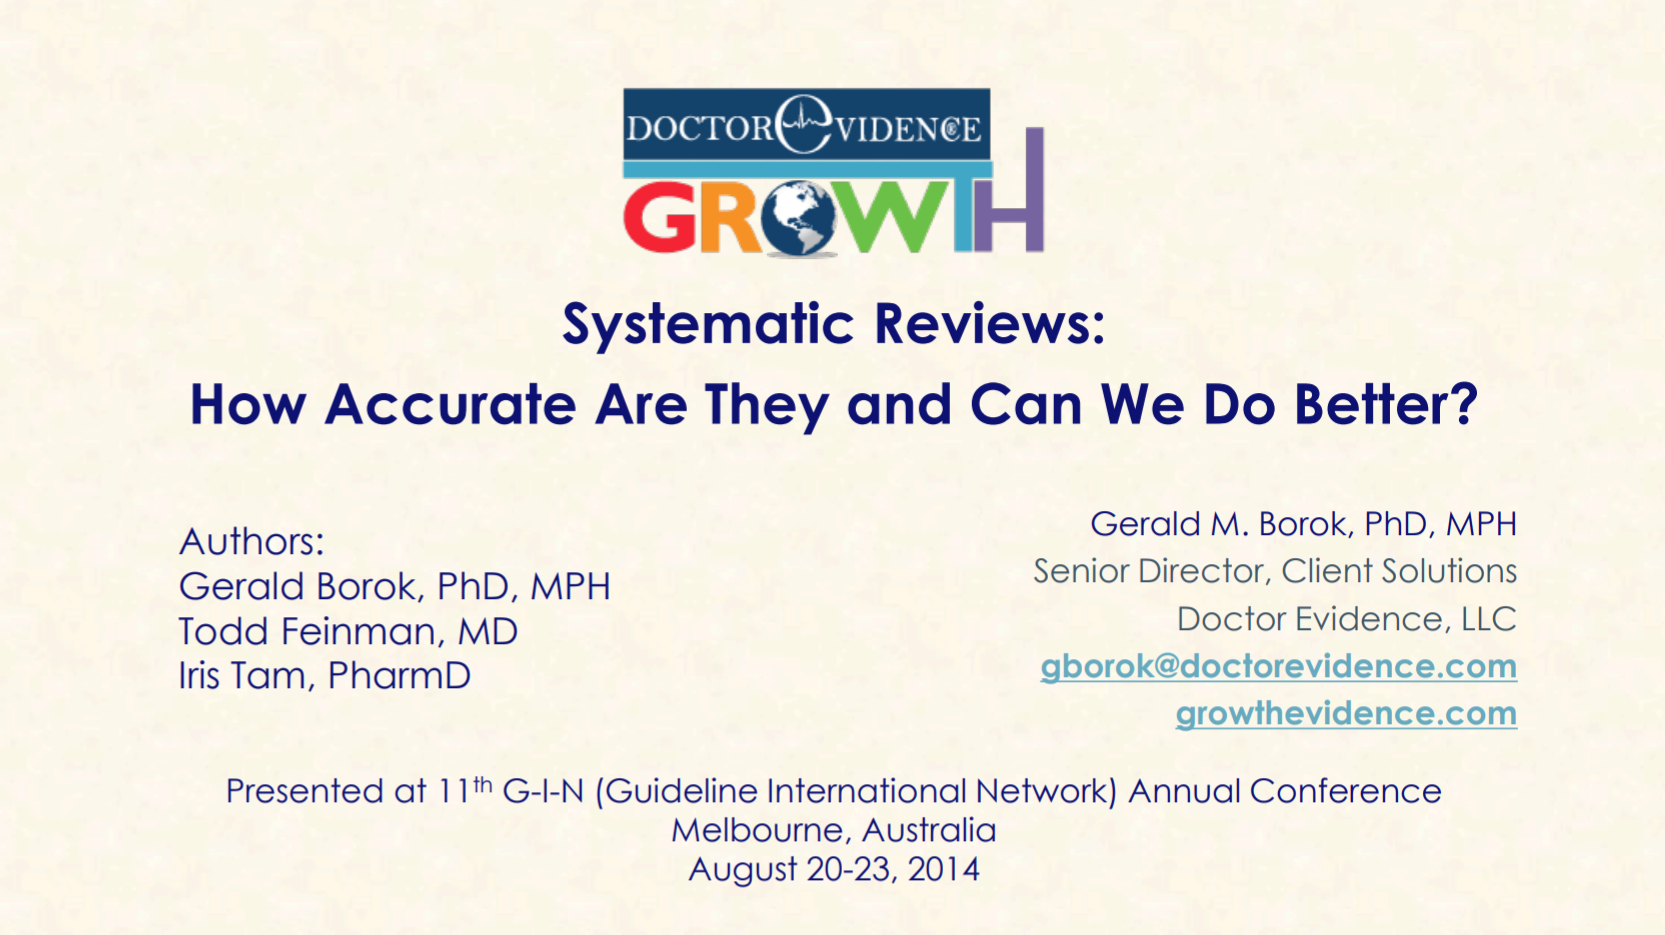 Systematic Reviews-How Accurate Are They and Can We Do Better